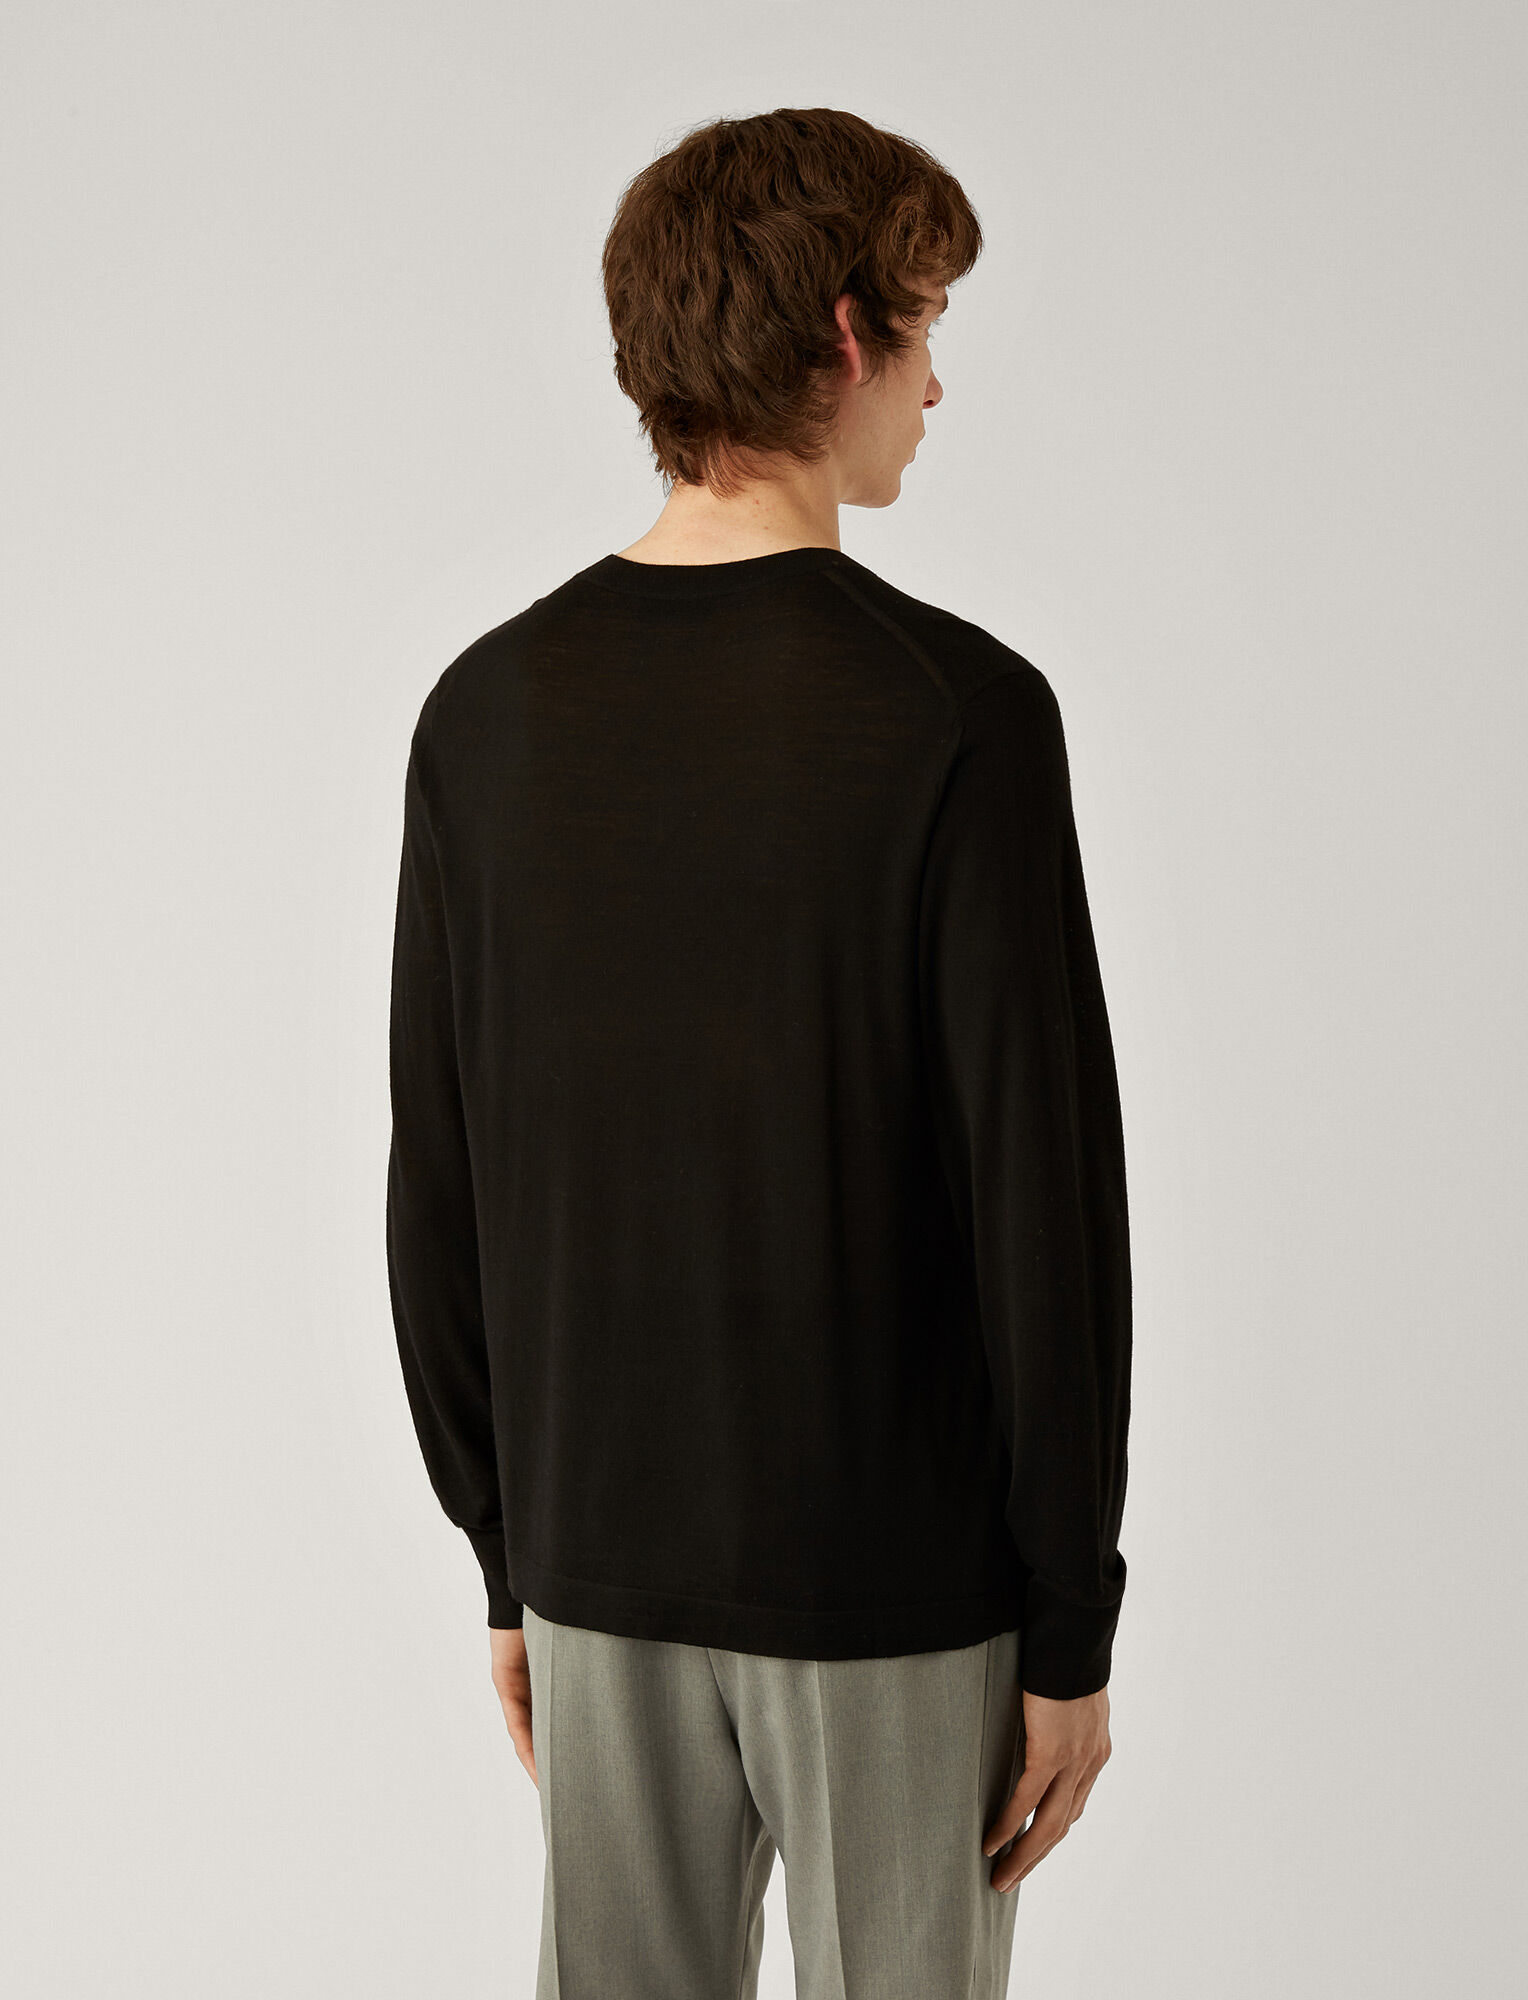 Joseph, V Neck Light Merinos Knit, in BLACK